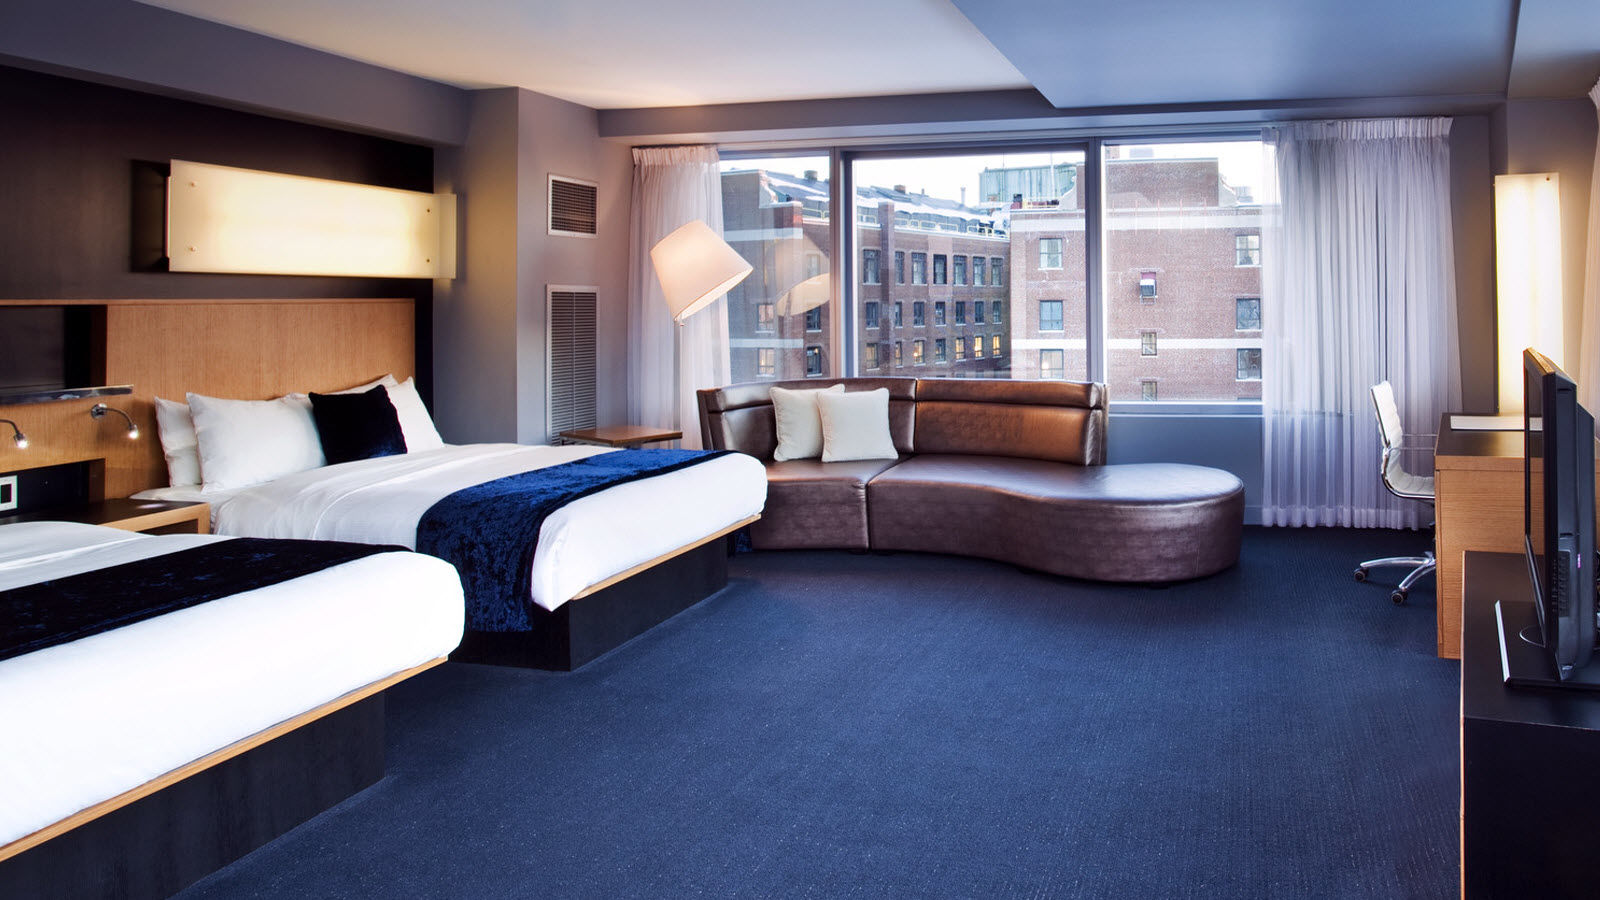 Hotel Rooms in Boston - Mega Room